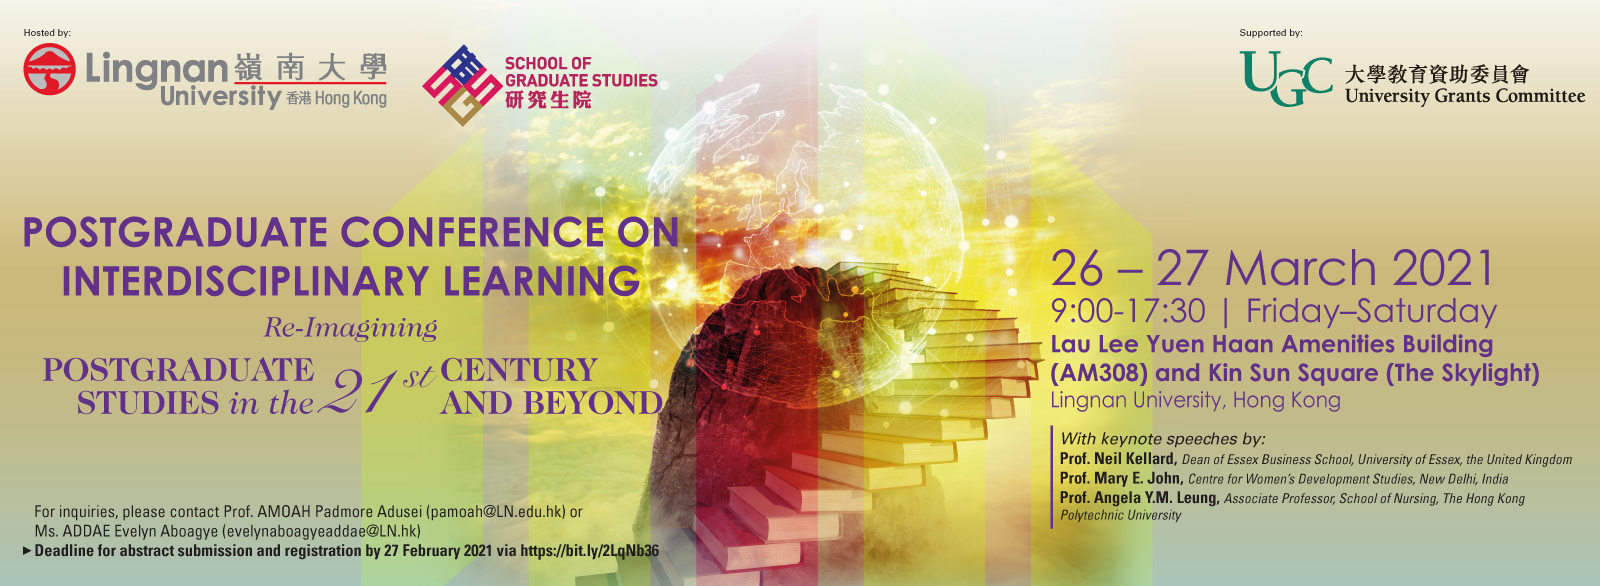 Postgraduate Conference on Interdisciplinary Learning: Re-Imagining Postgraduate Studies in the 21st Century and Beyond